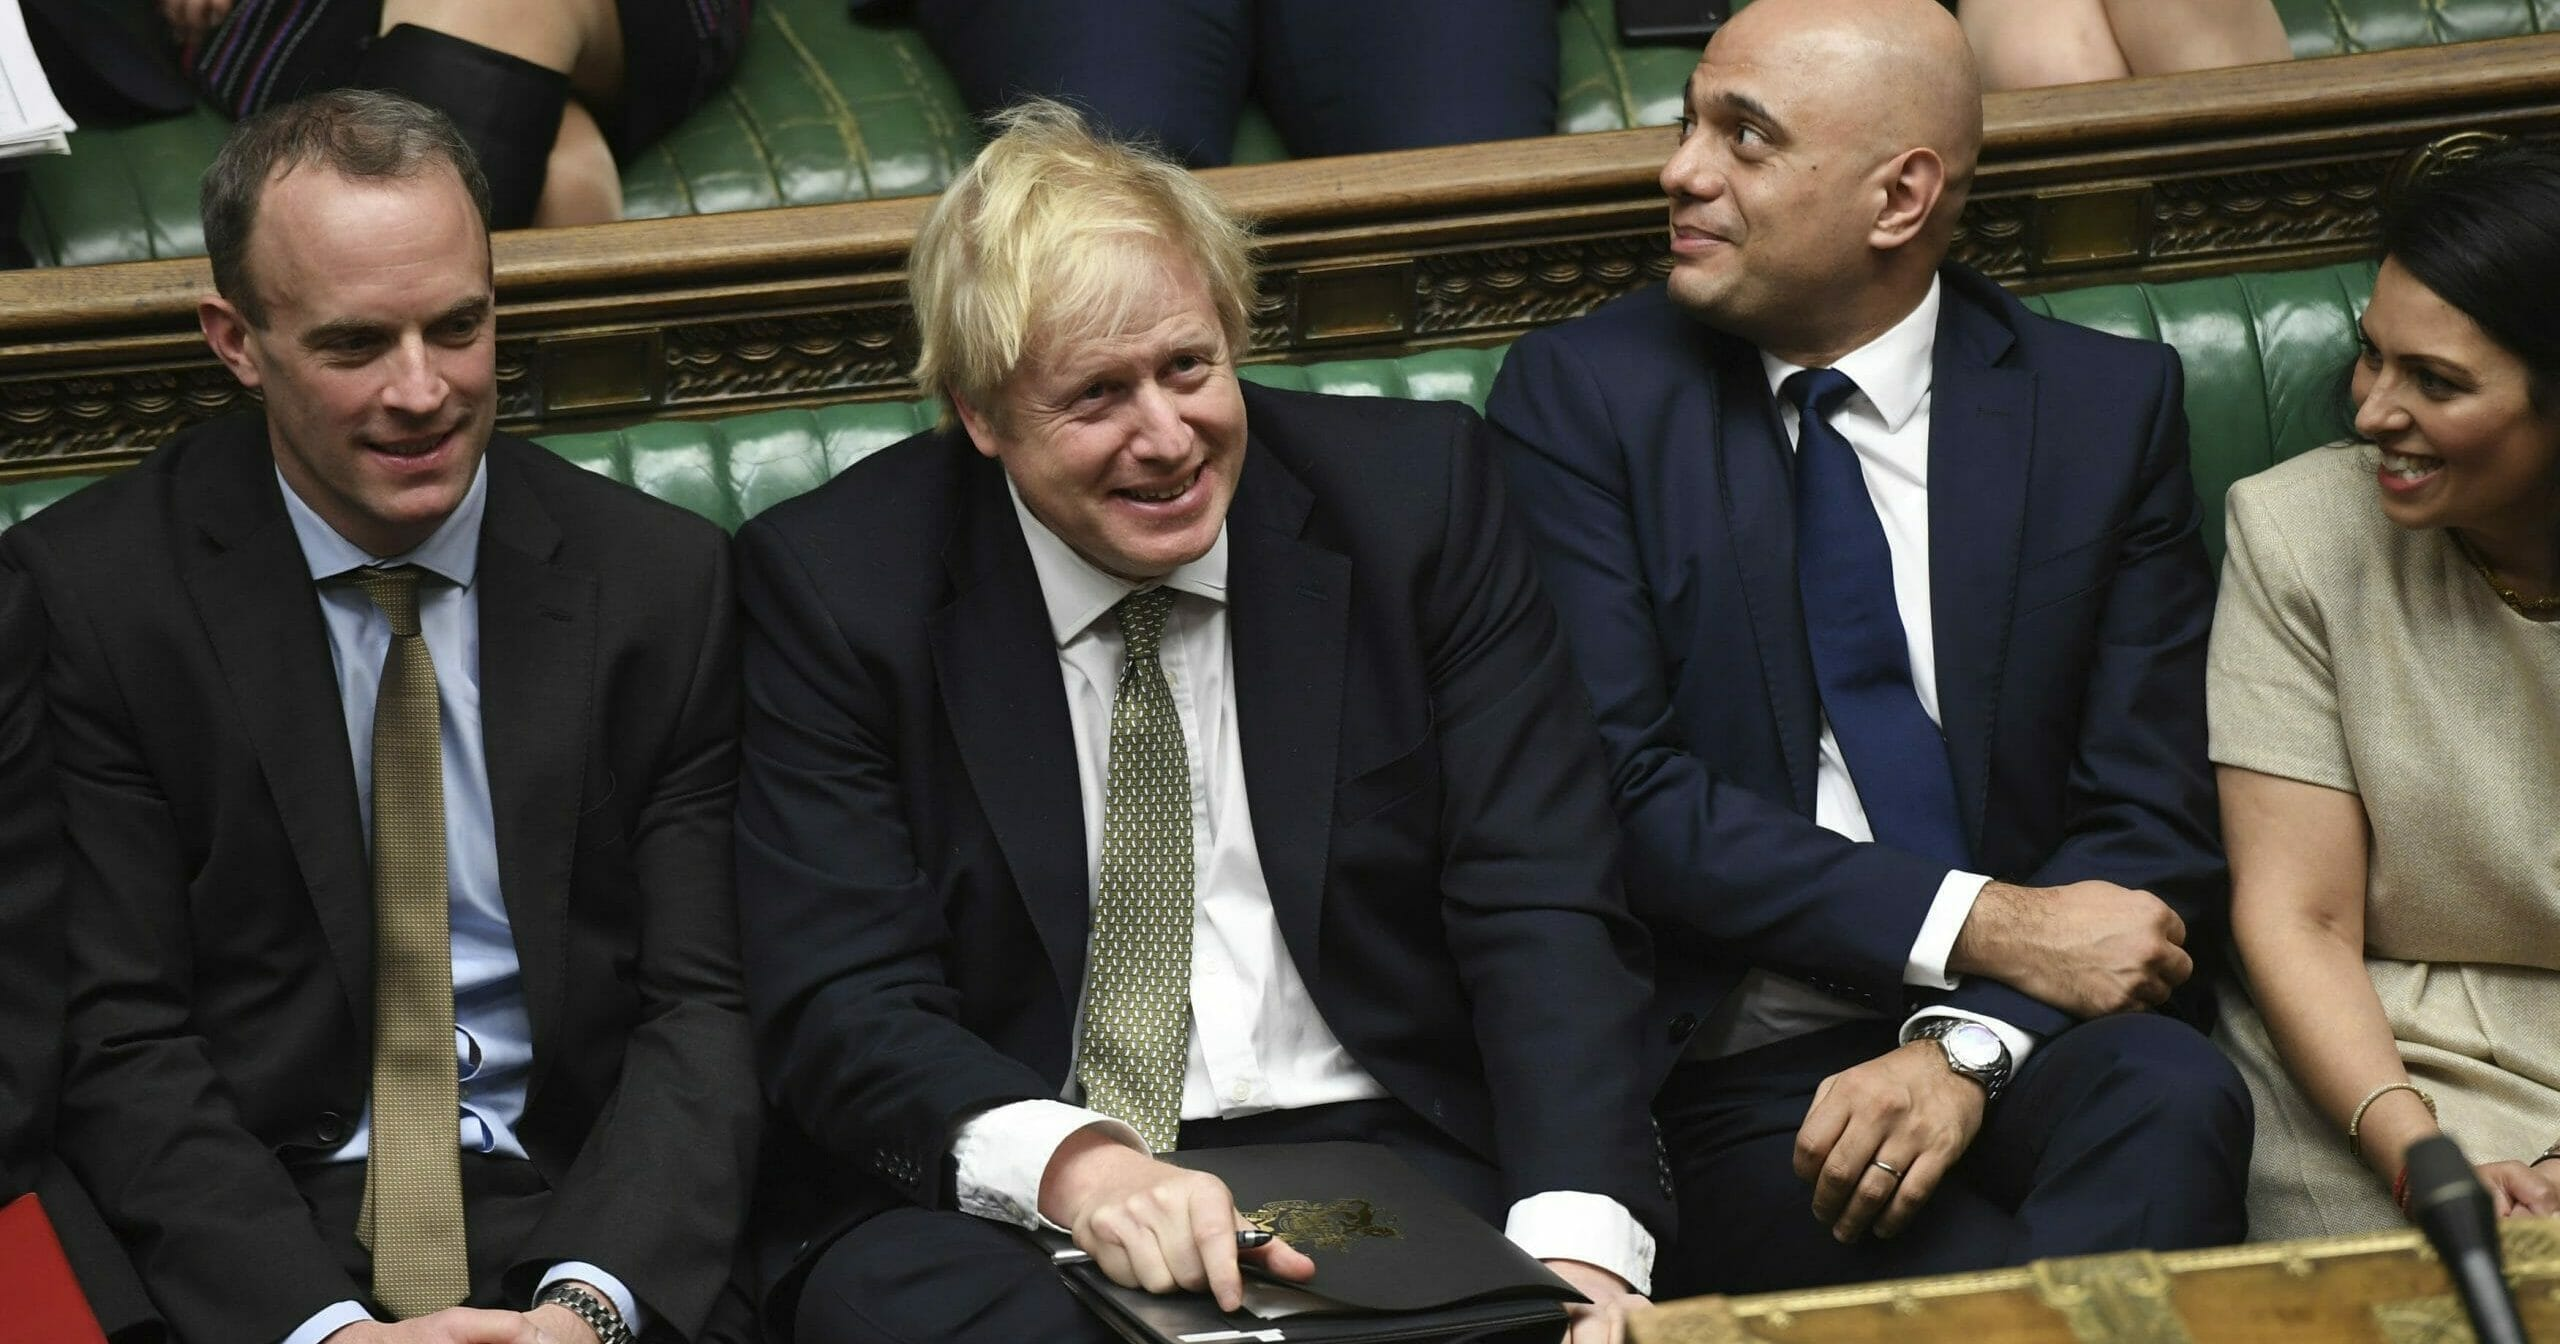 British Prime Minister Boris Johnson, center, attends the debate in the House of Commons in London on Dec. 19, 2019.